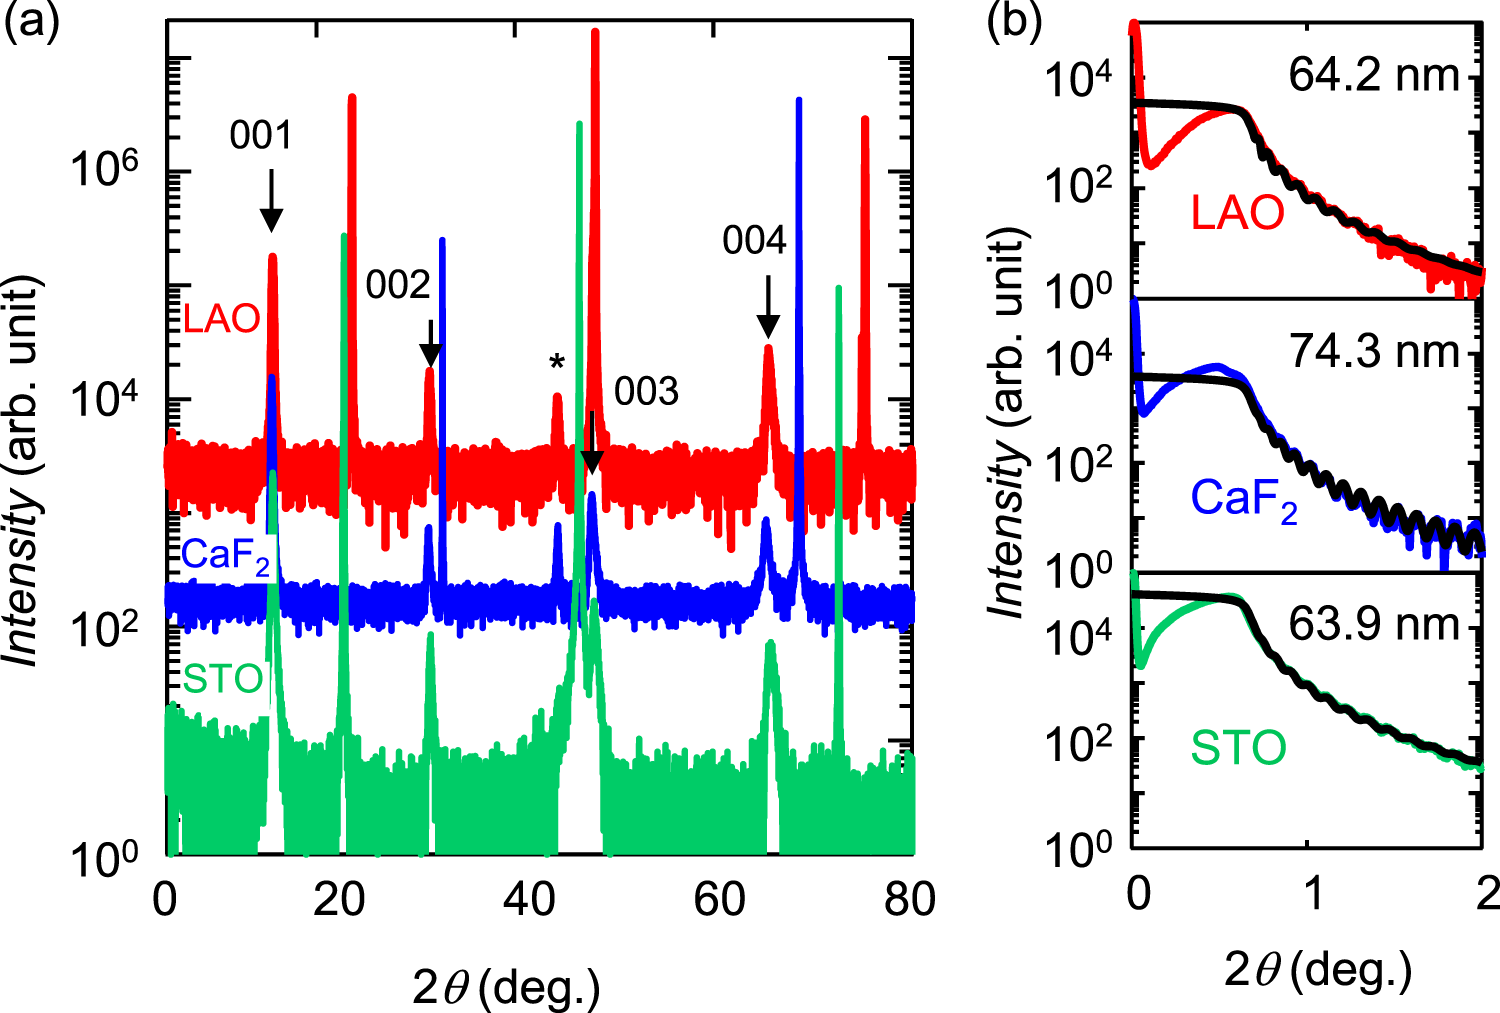 Superconductivity at 38 K at an electrochemical interface